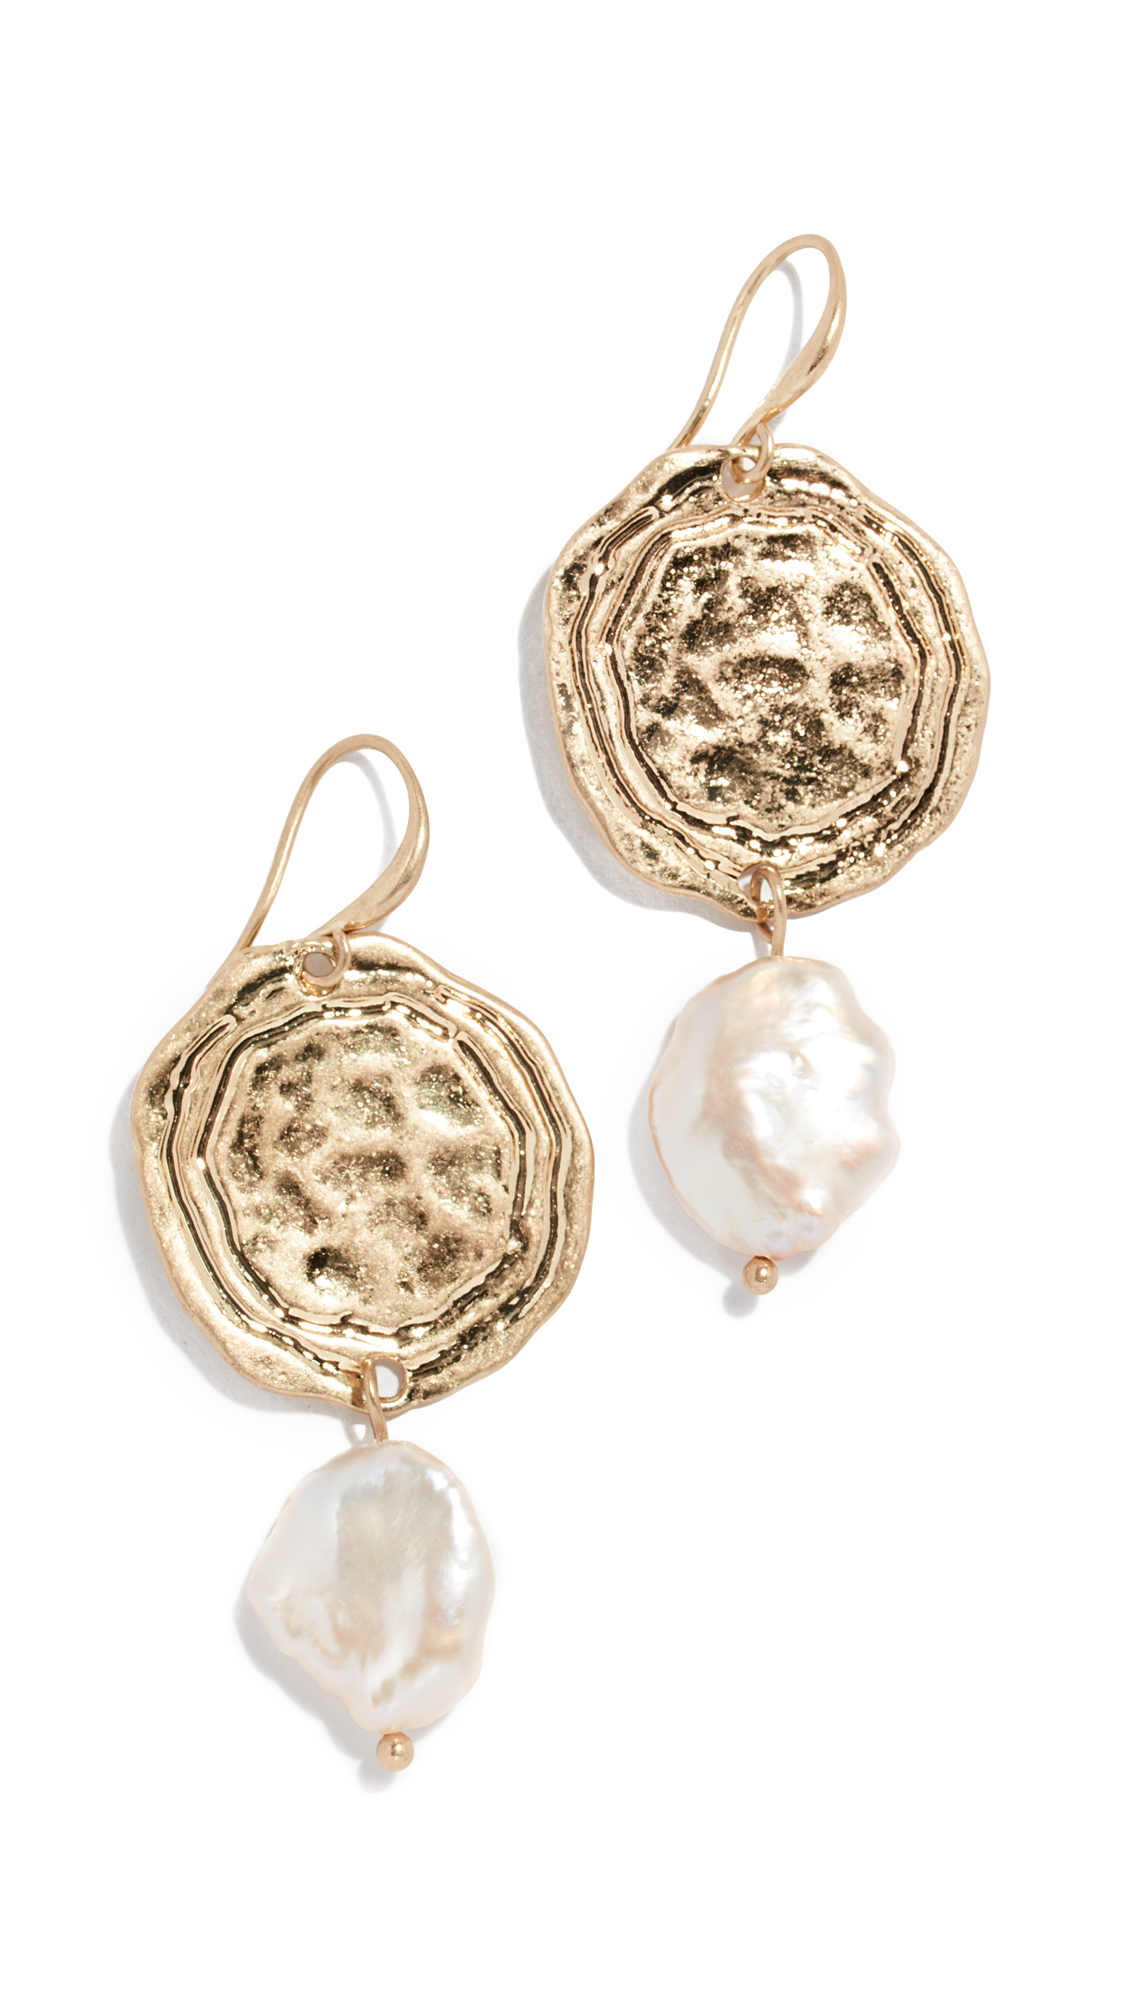 RELIQUIA Surprise Earrings in Yellow Gold/Pearl